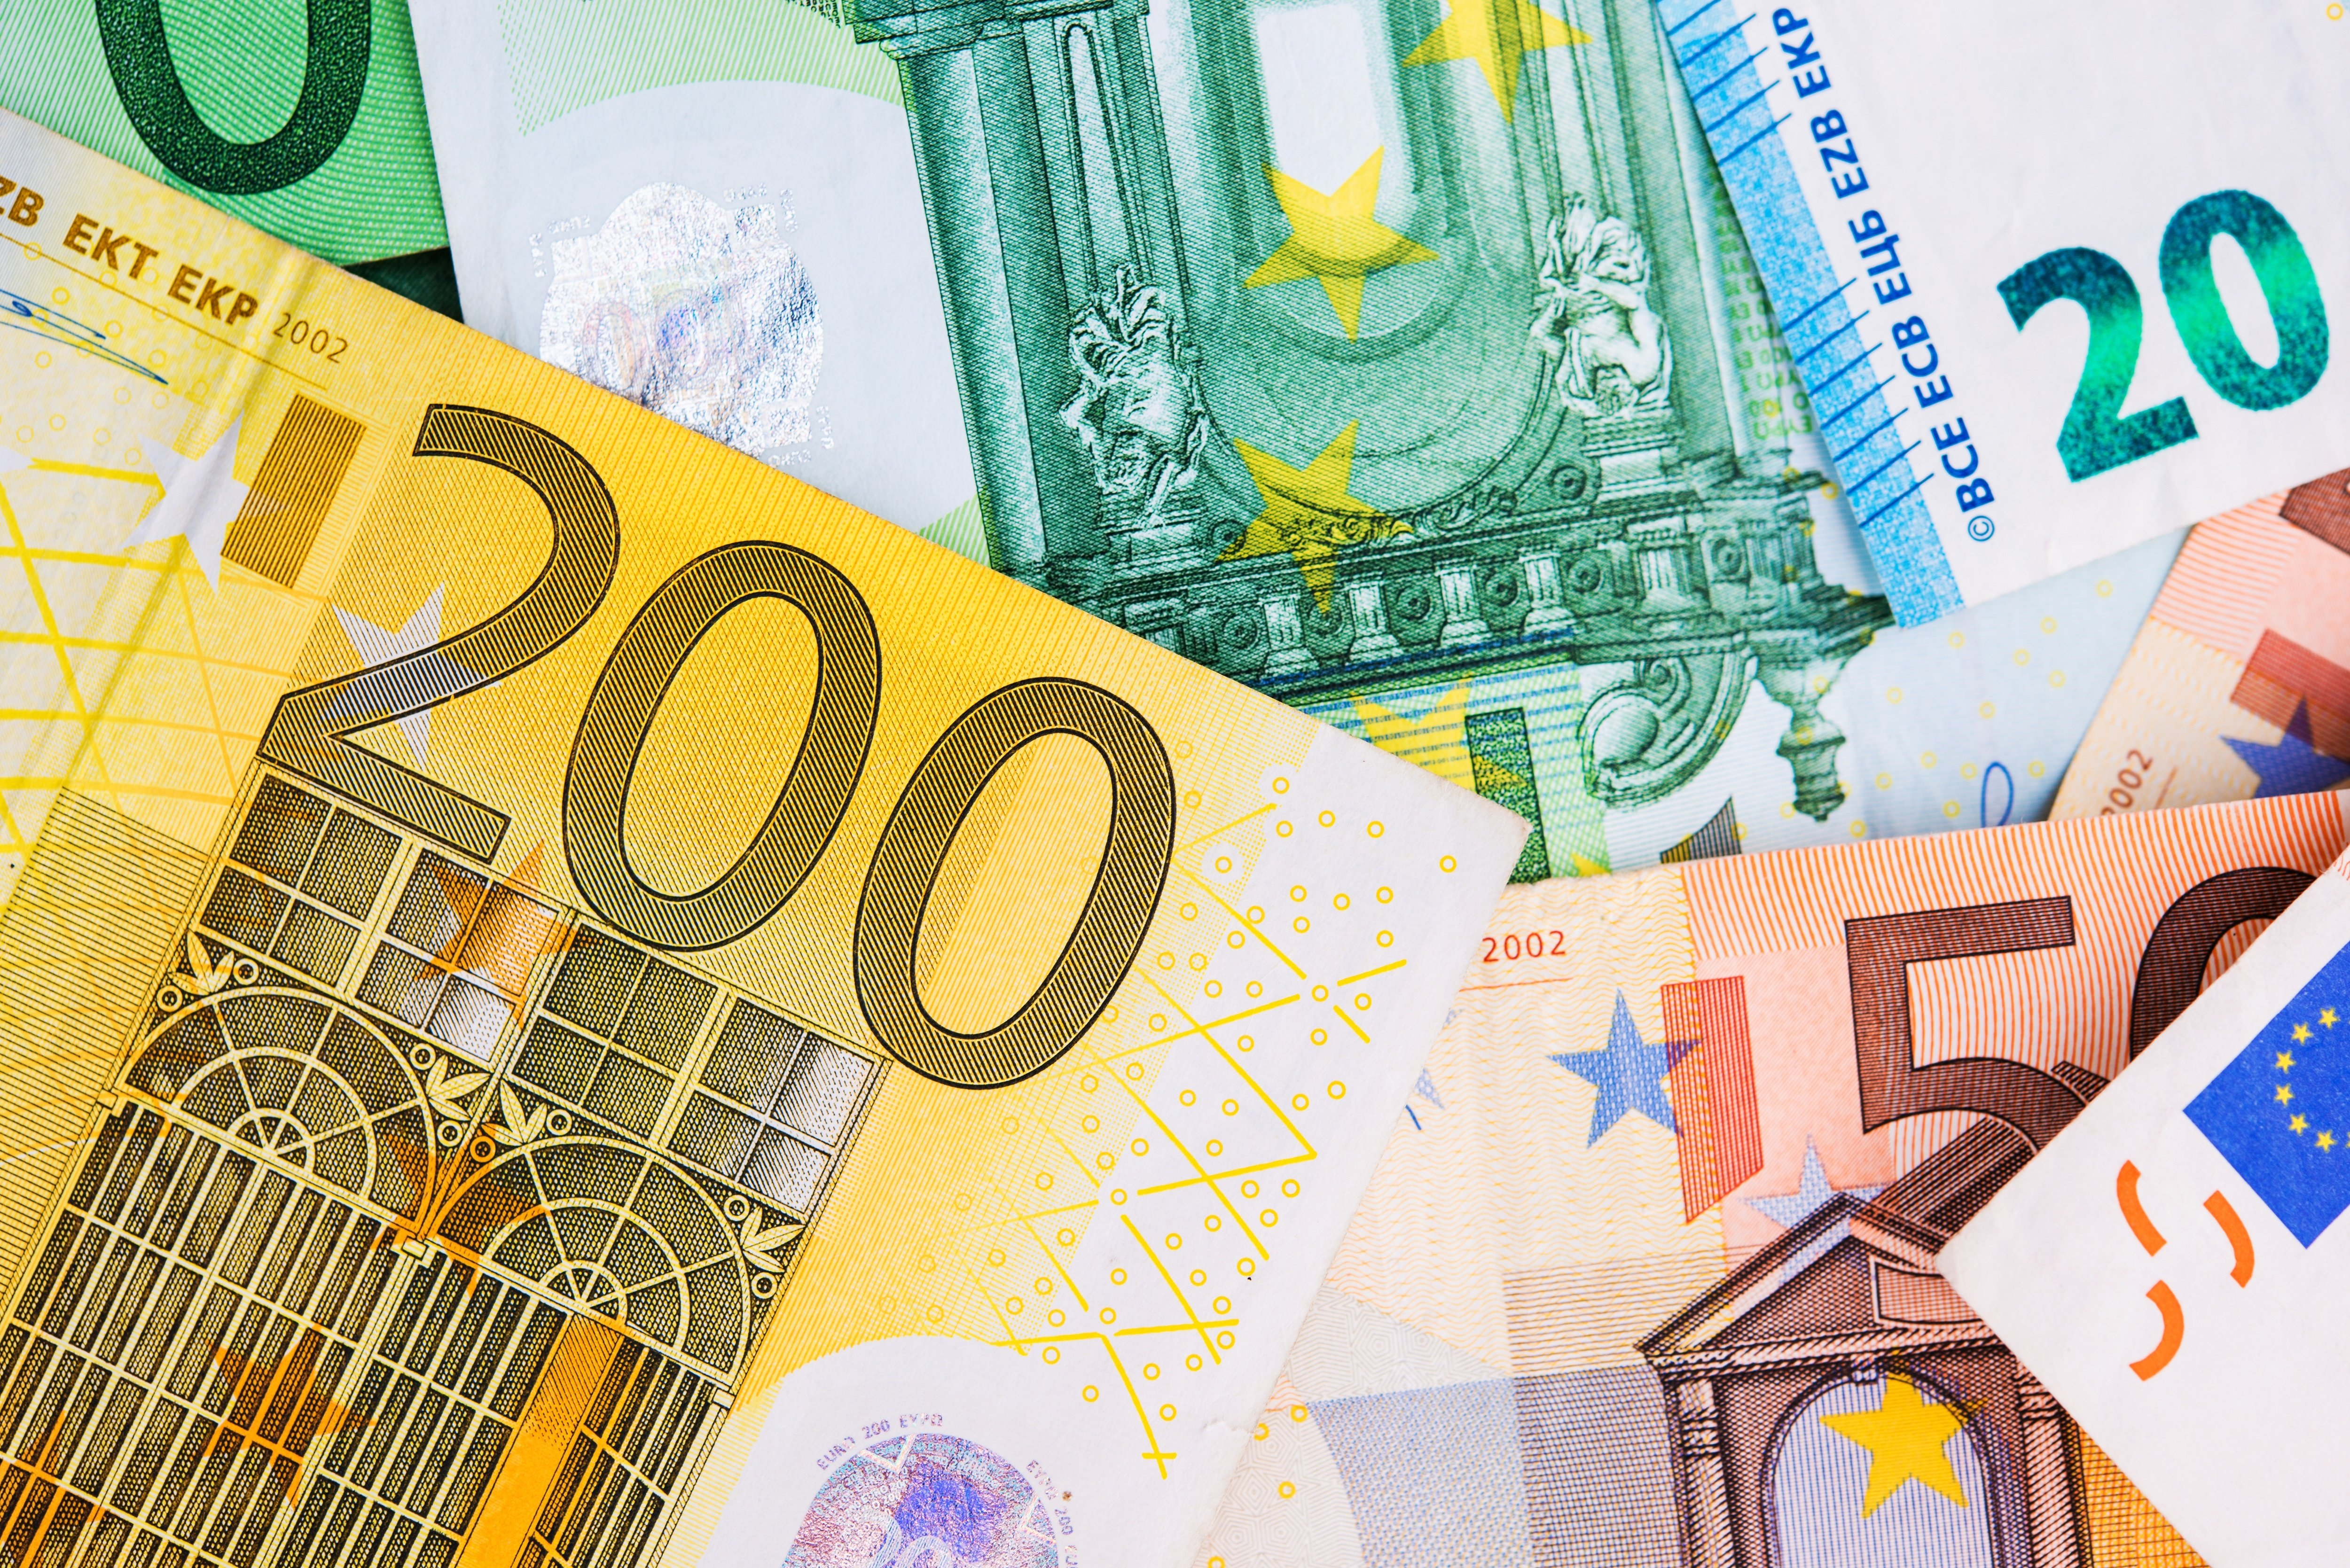 euro-money-banknotes-PV4GD7E.jpg